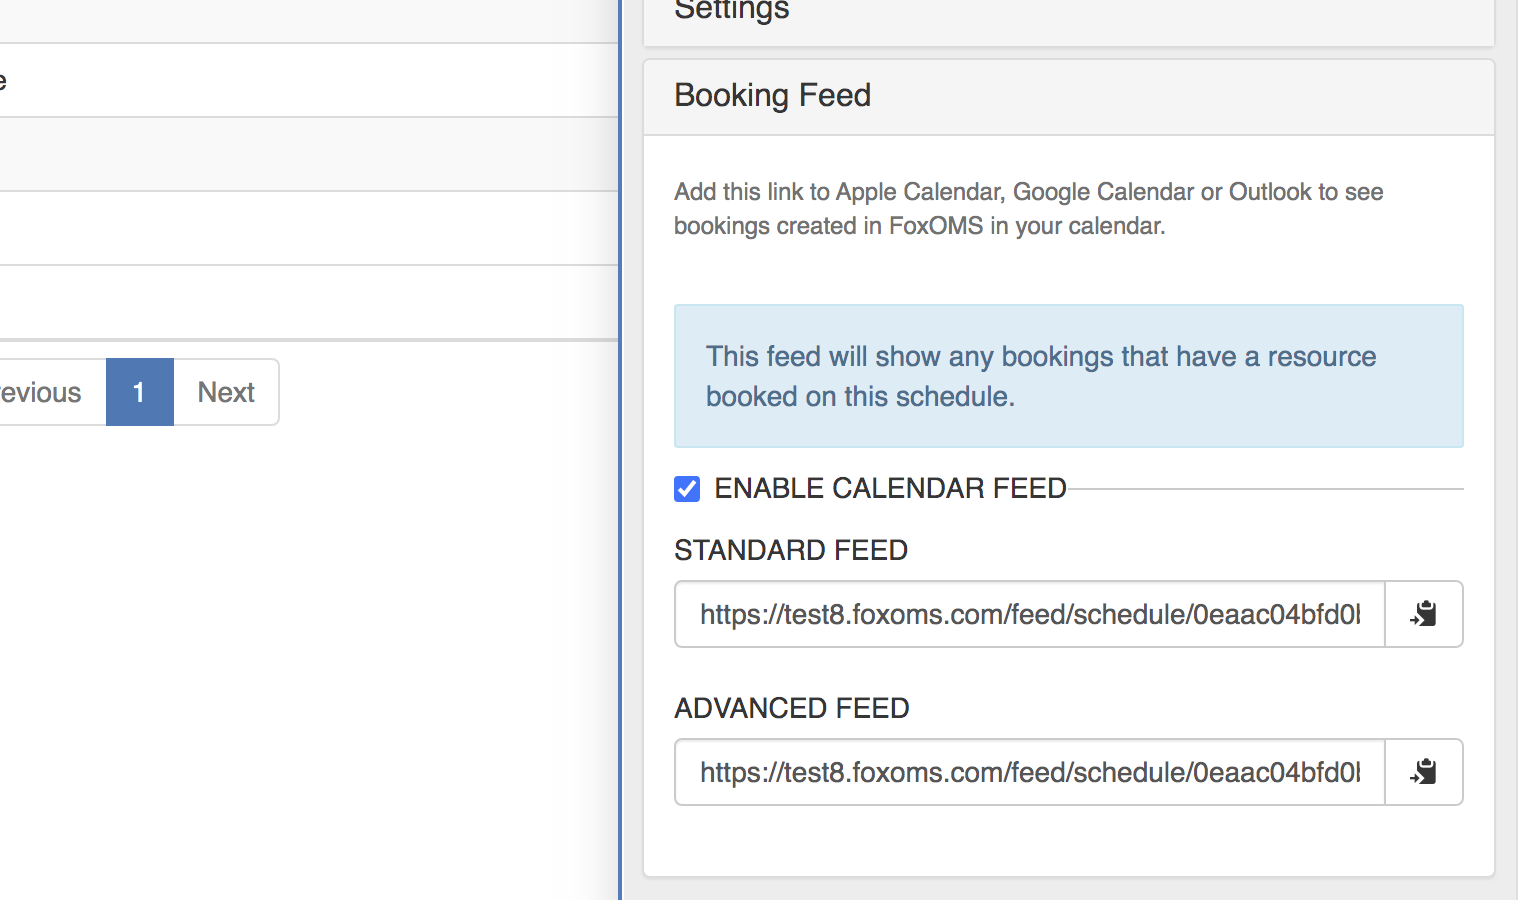 Advanced Booking Feed